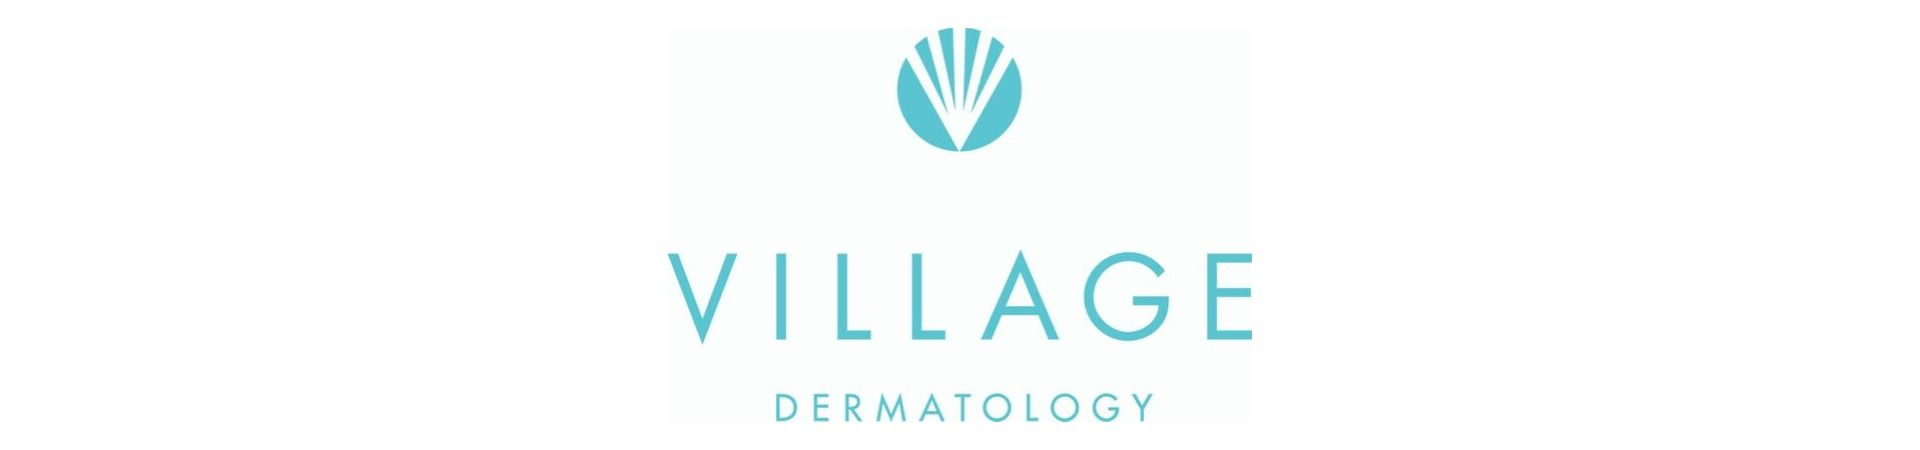 Village Dermatology Logo